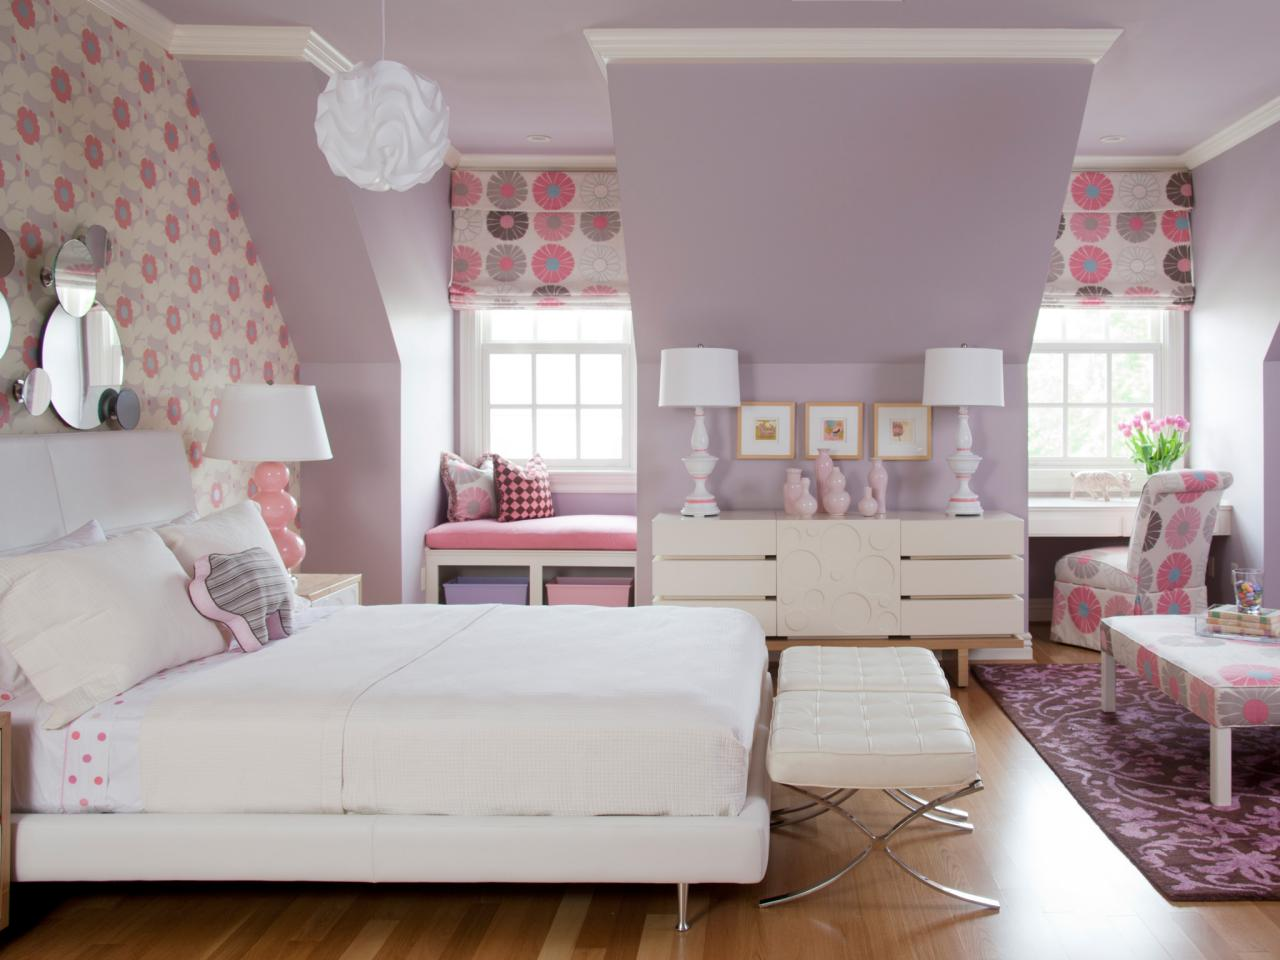 Master bedroom wall paint designs - Coral And Kelly Green Bedroom